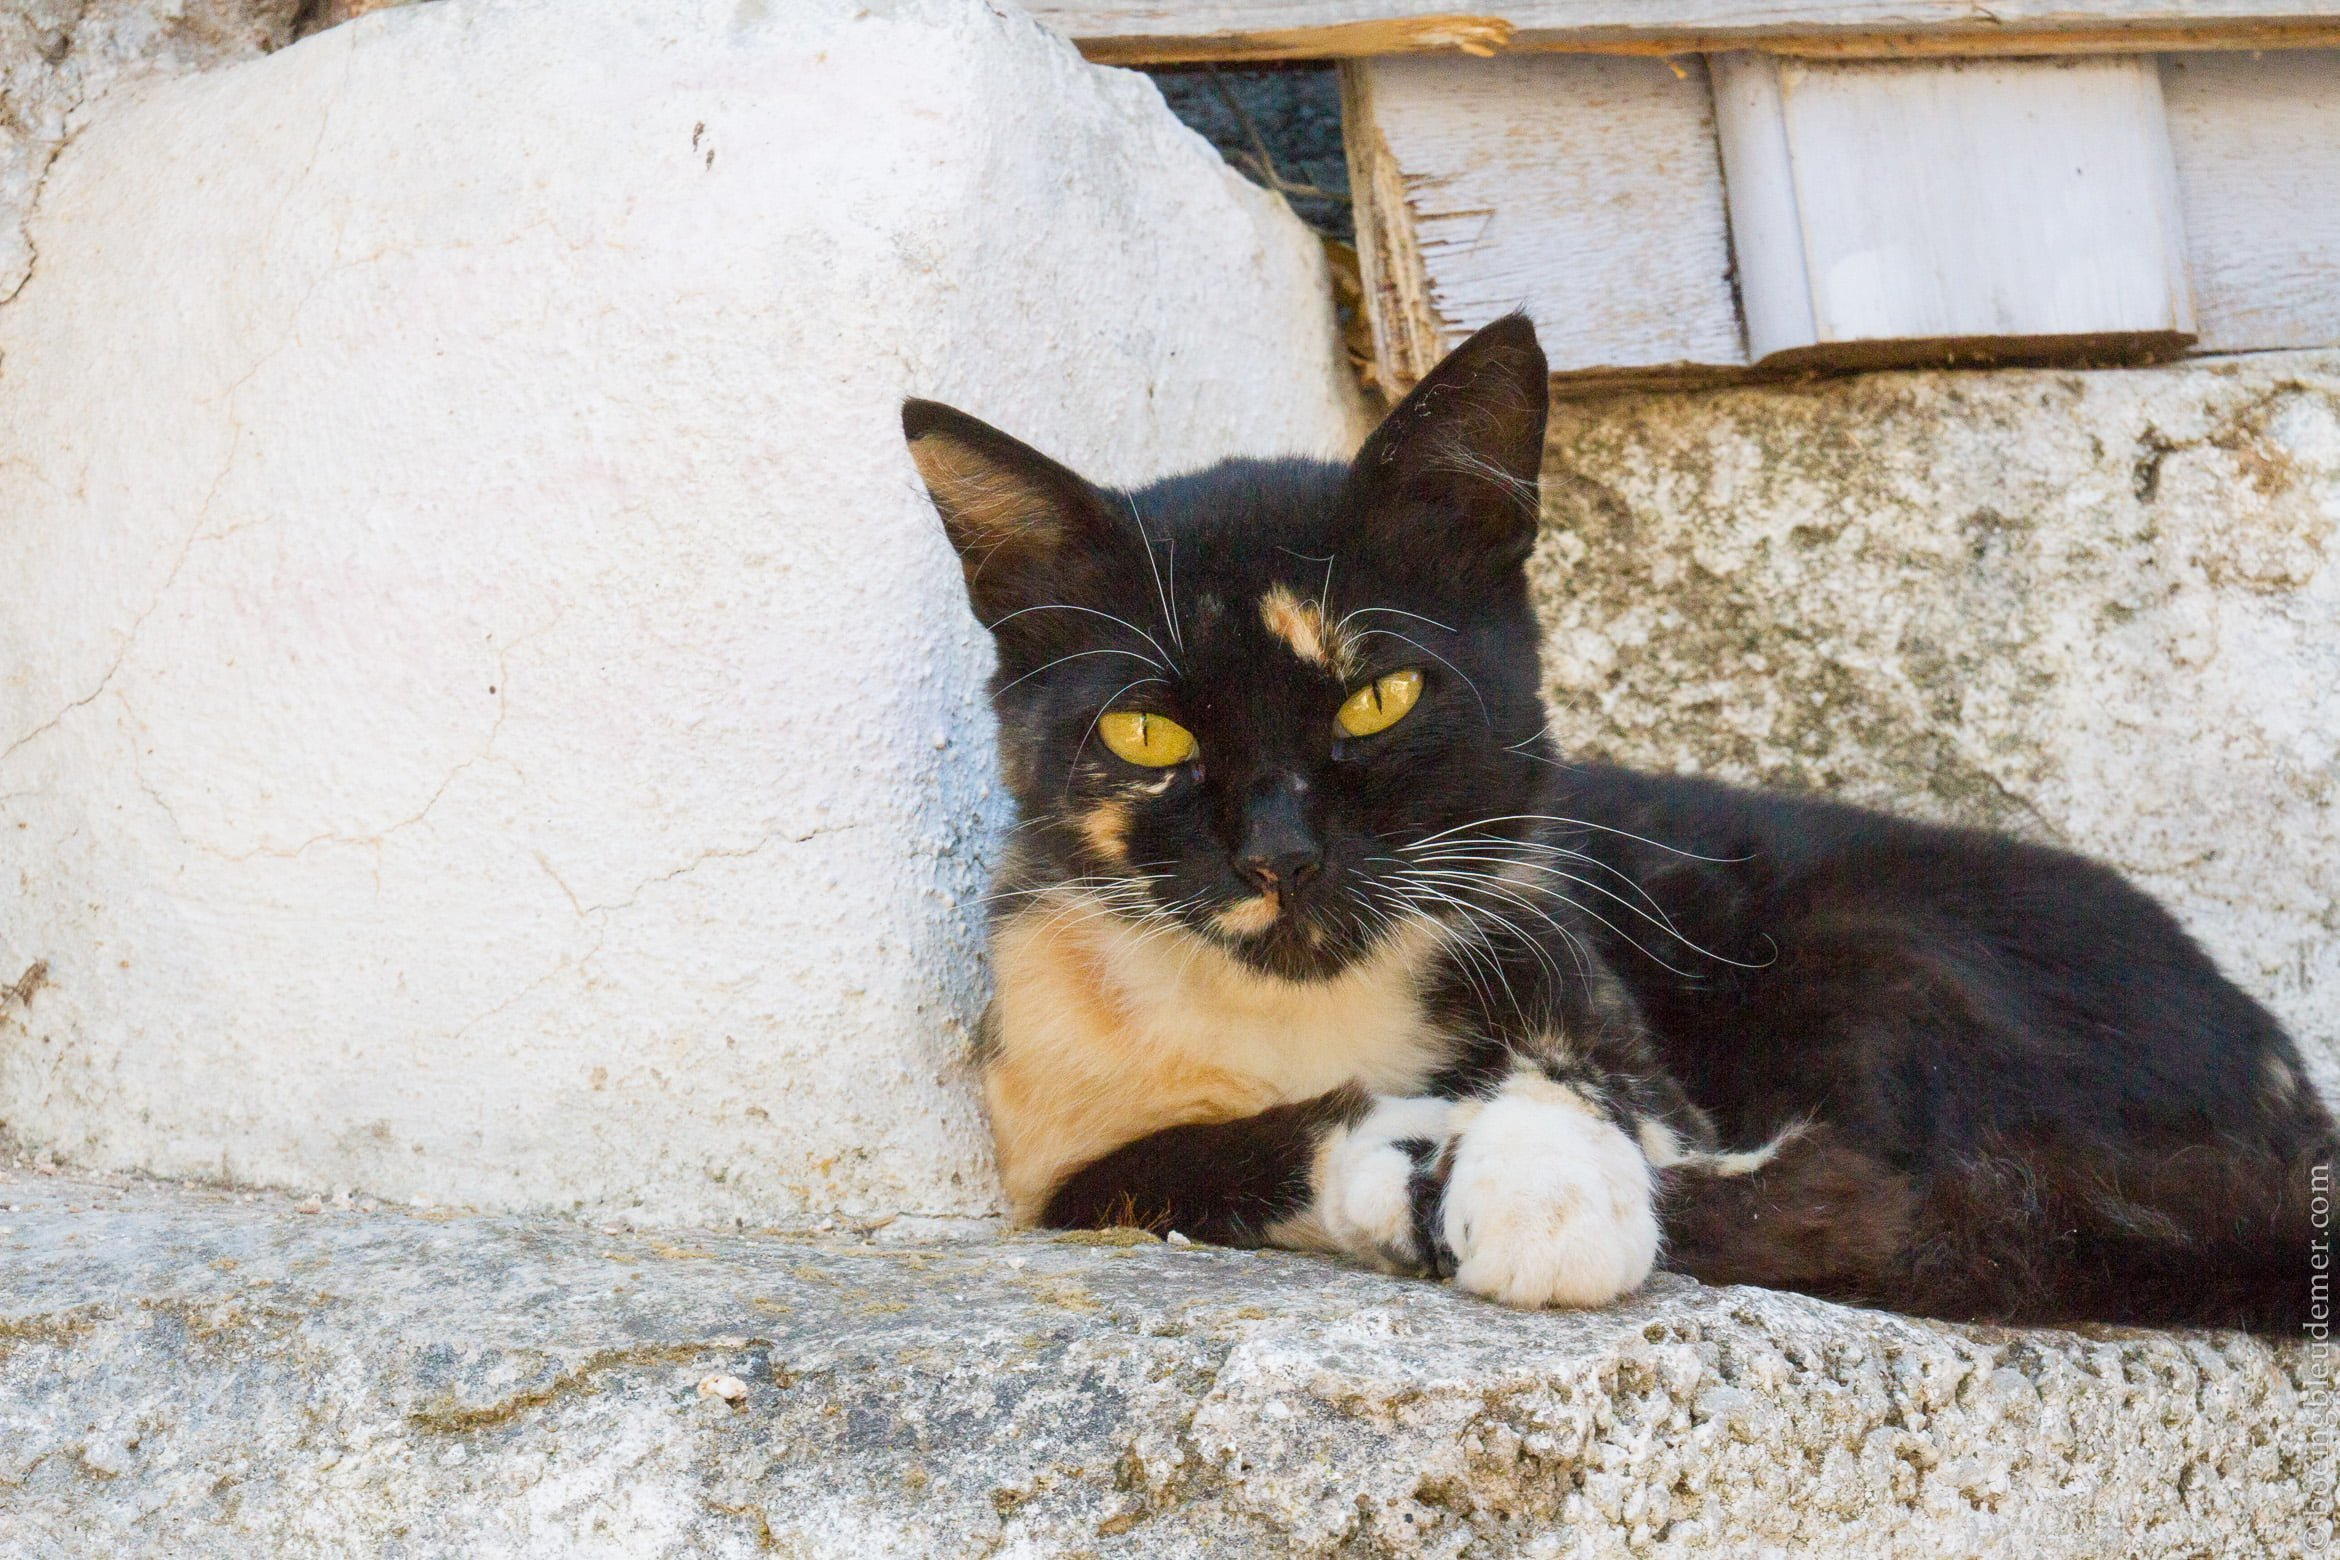 Pittoresque île d'Hydra: chat grec